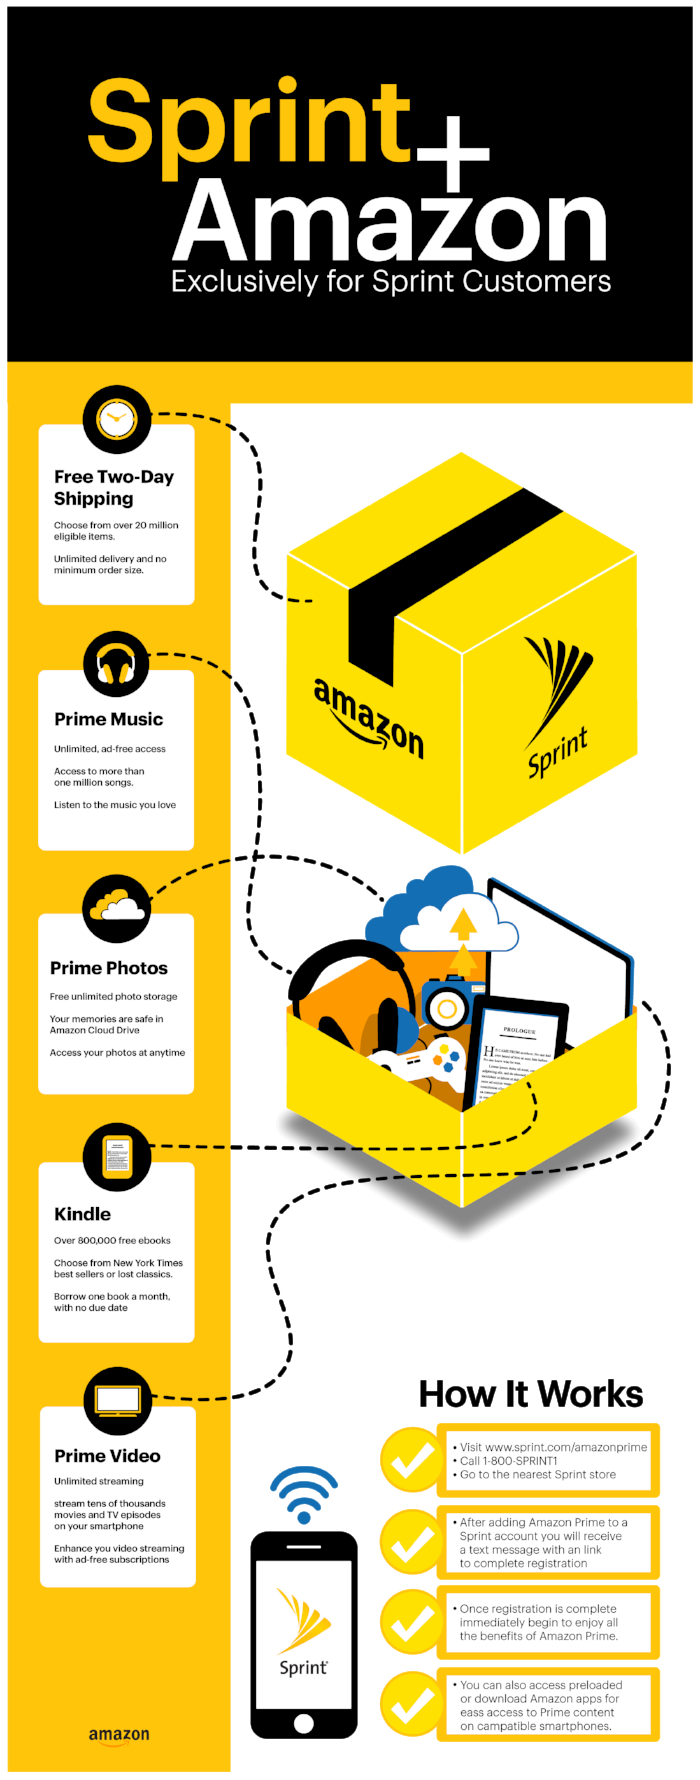 Sprint_Amazon_Infographic_3-30-16-01.png